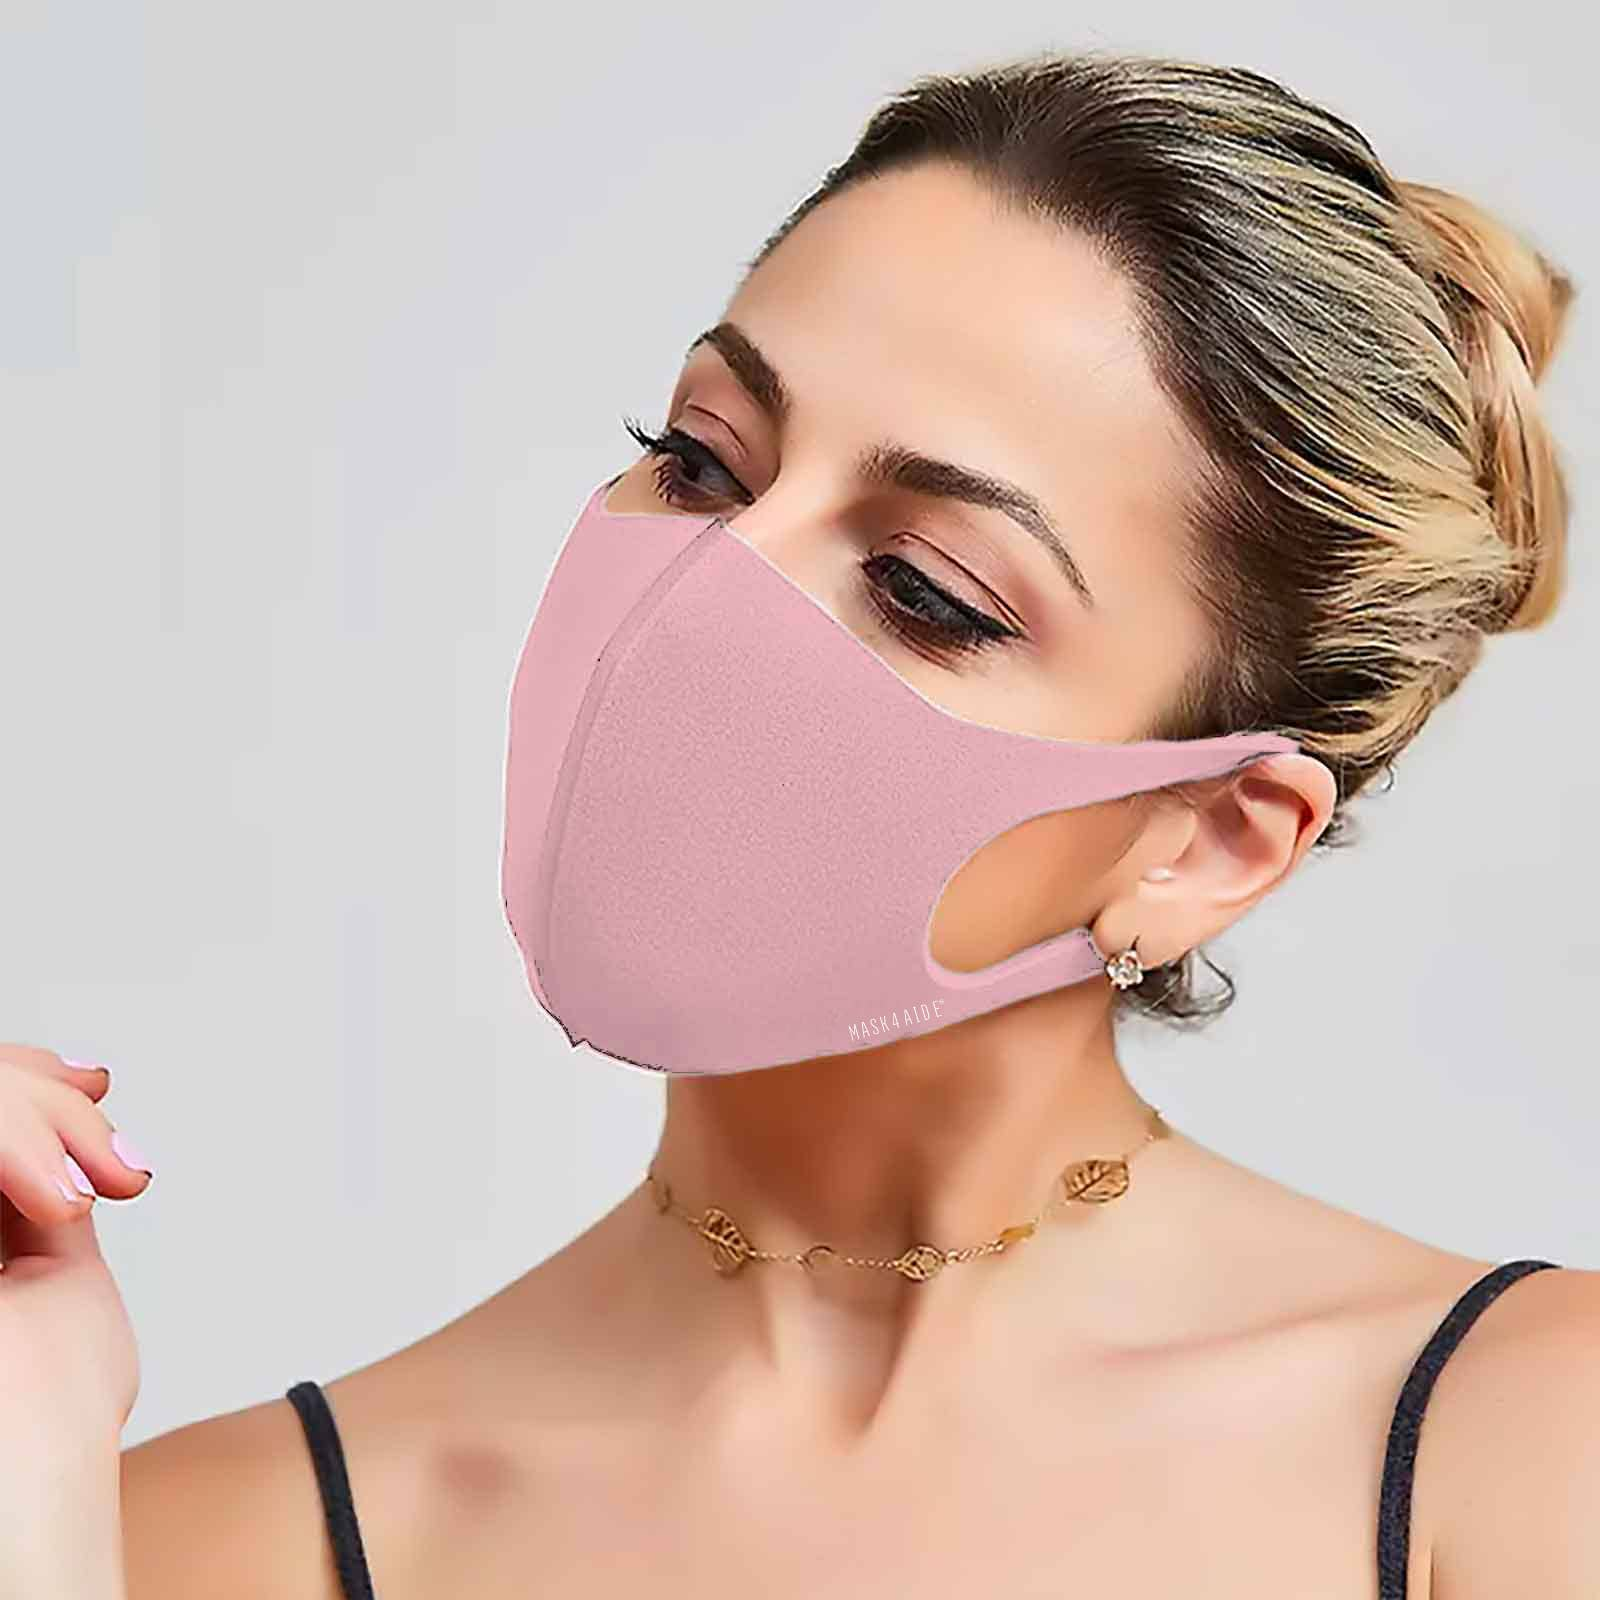 iMask Reusable Unisex Face Mask - Pink